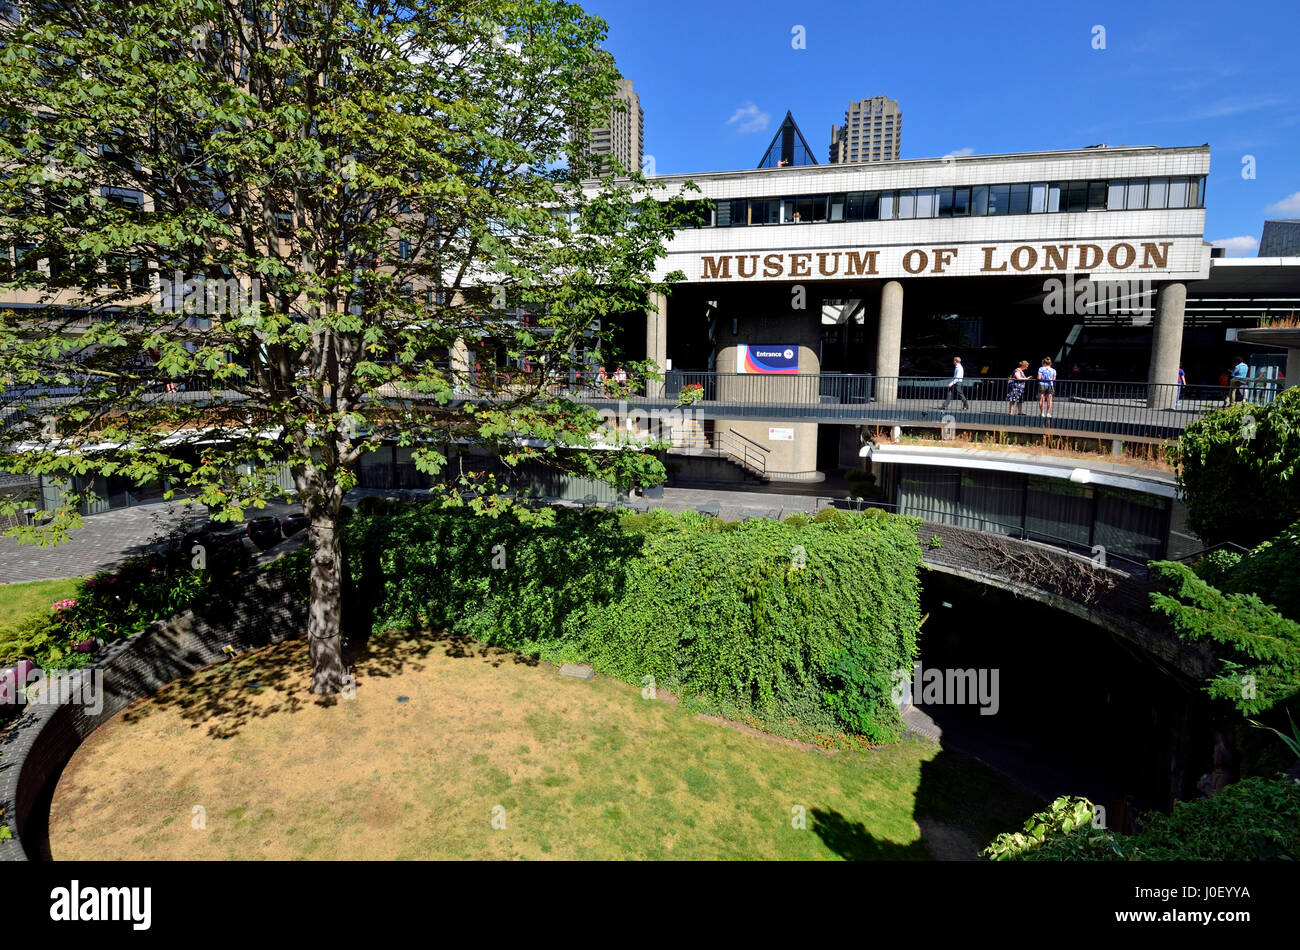 London, England, UK. Museum of London, London Wall, Barbican - Stock Image